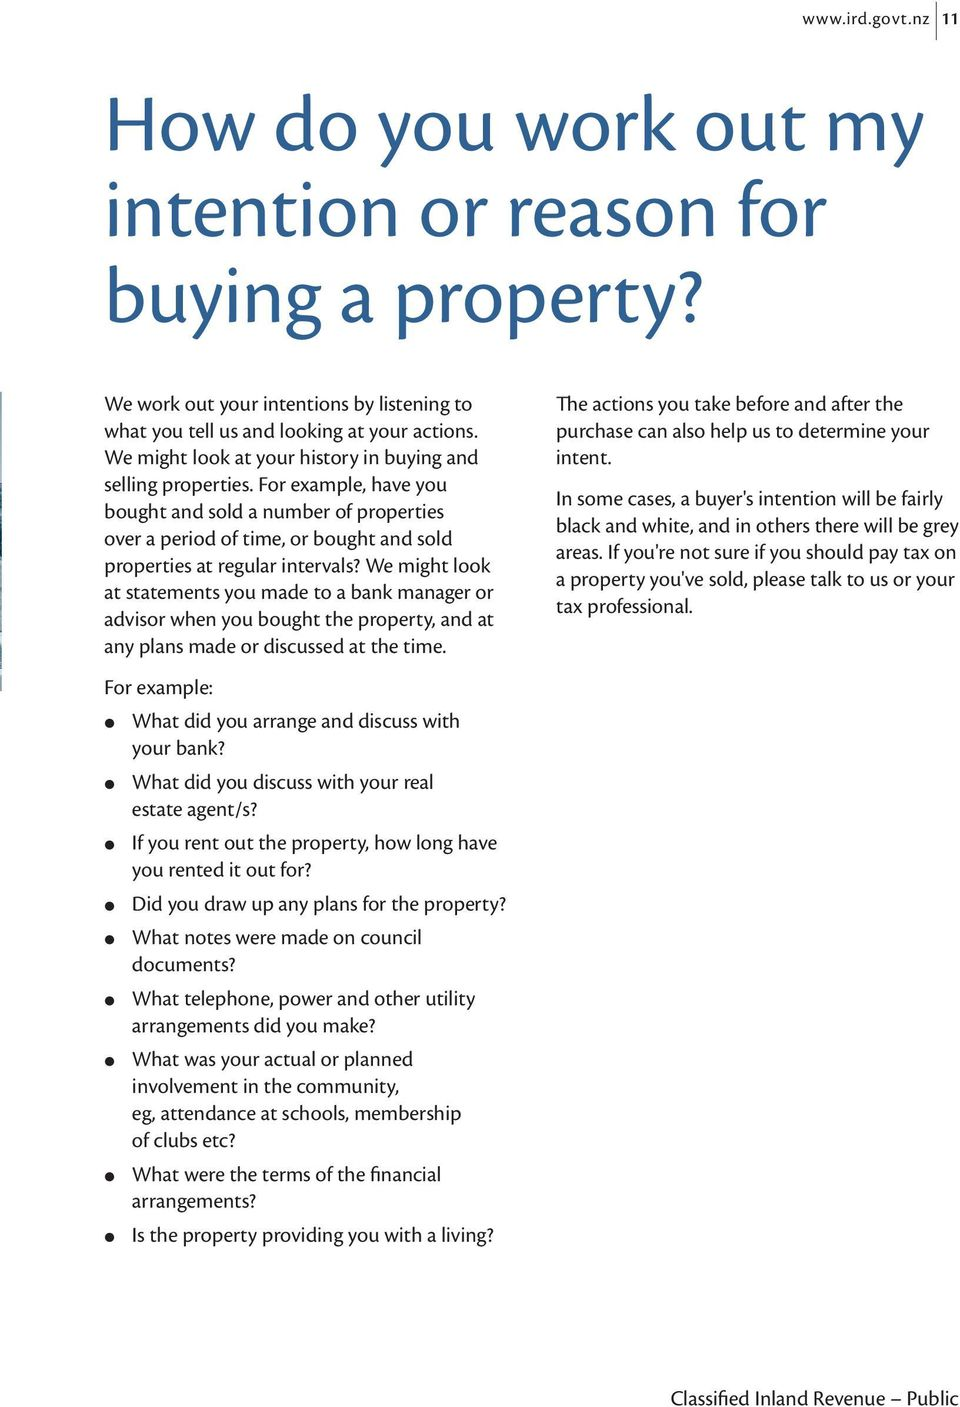 We might look at statements you made to a bank manager or advisor when you bought the property, and at any plans made or discussed at the time.